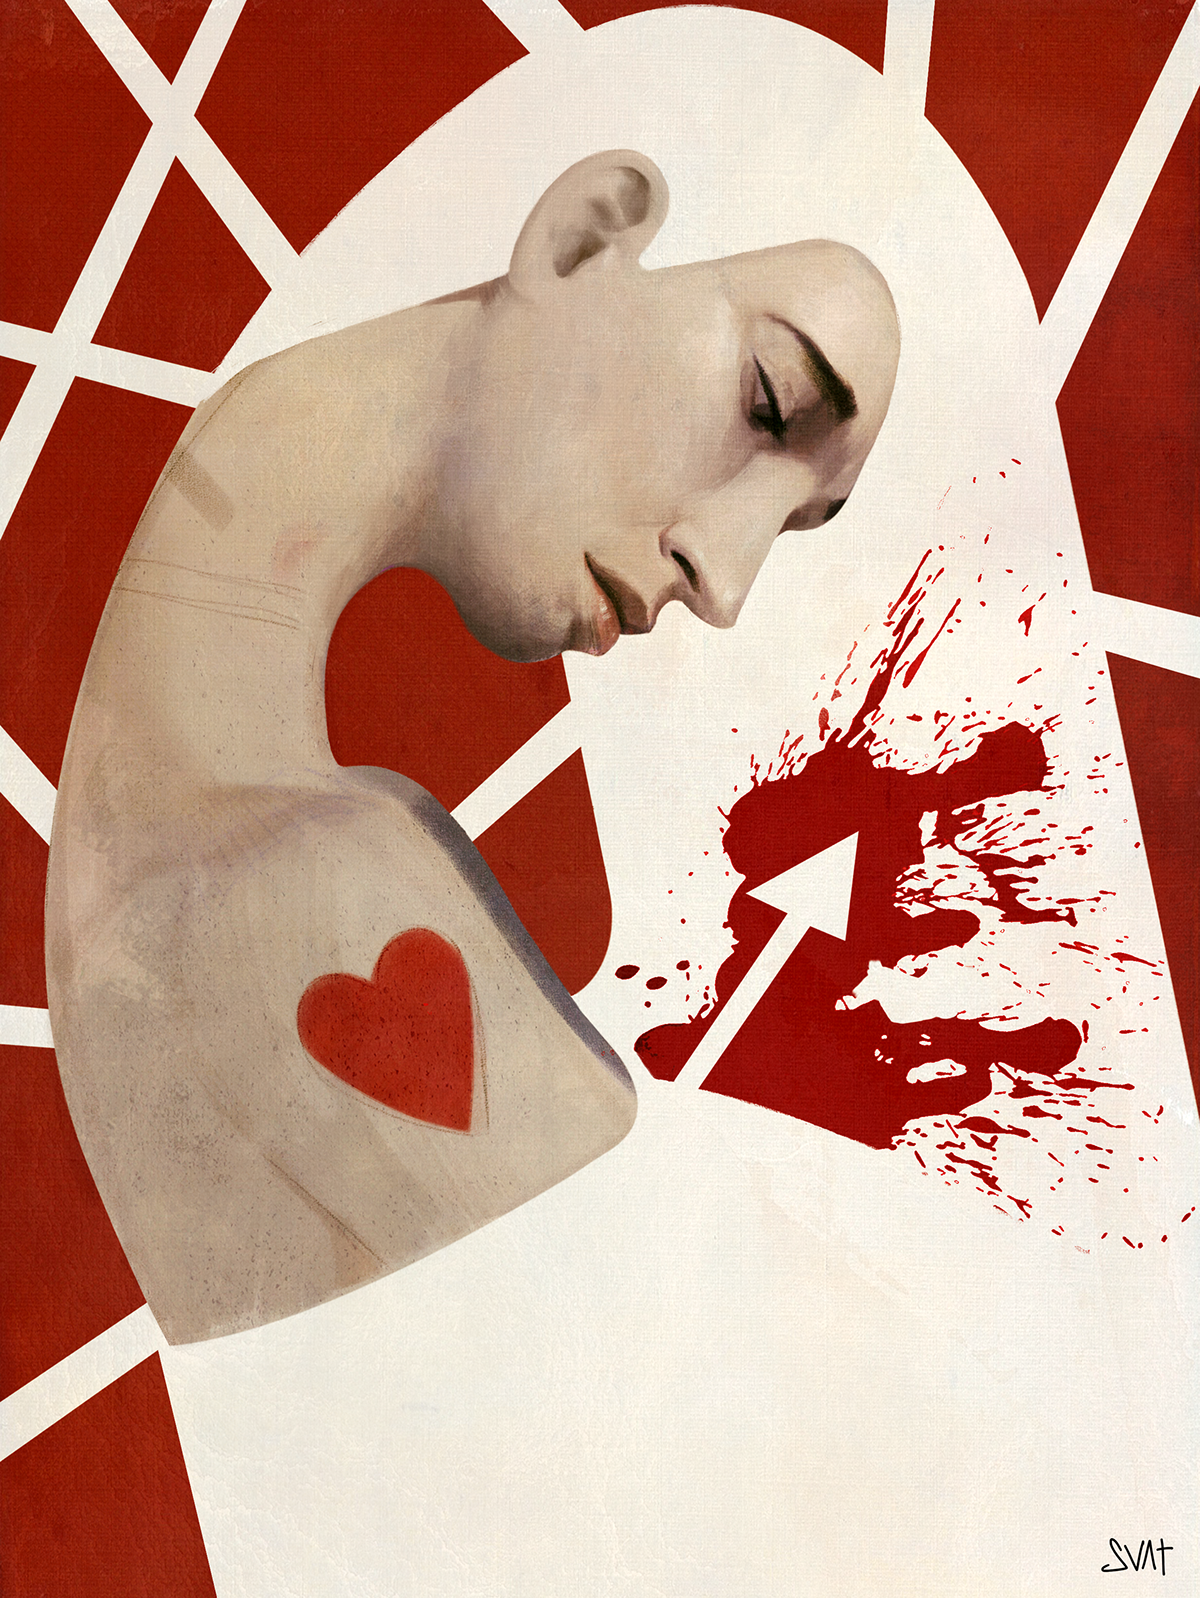 'Betreyal' Illustration done for an article about cheating in relationships.